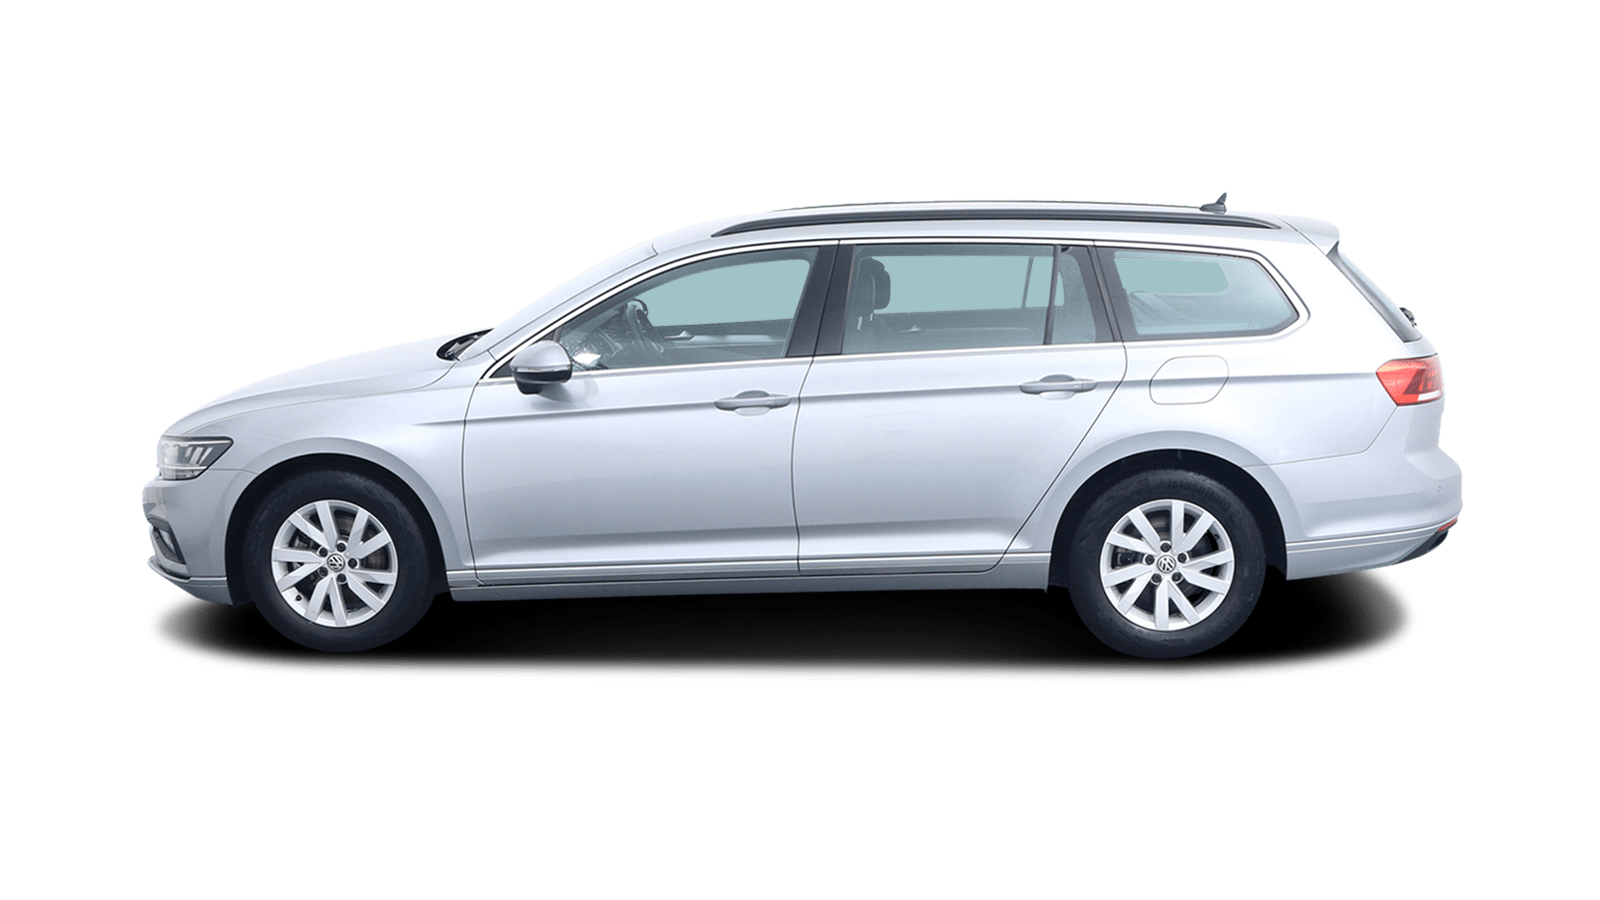 VW Passat Variant Silver back - Clyde car subscription